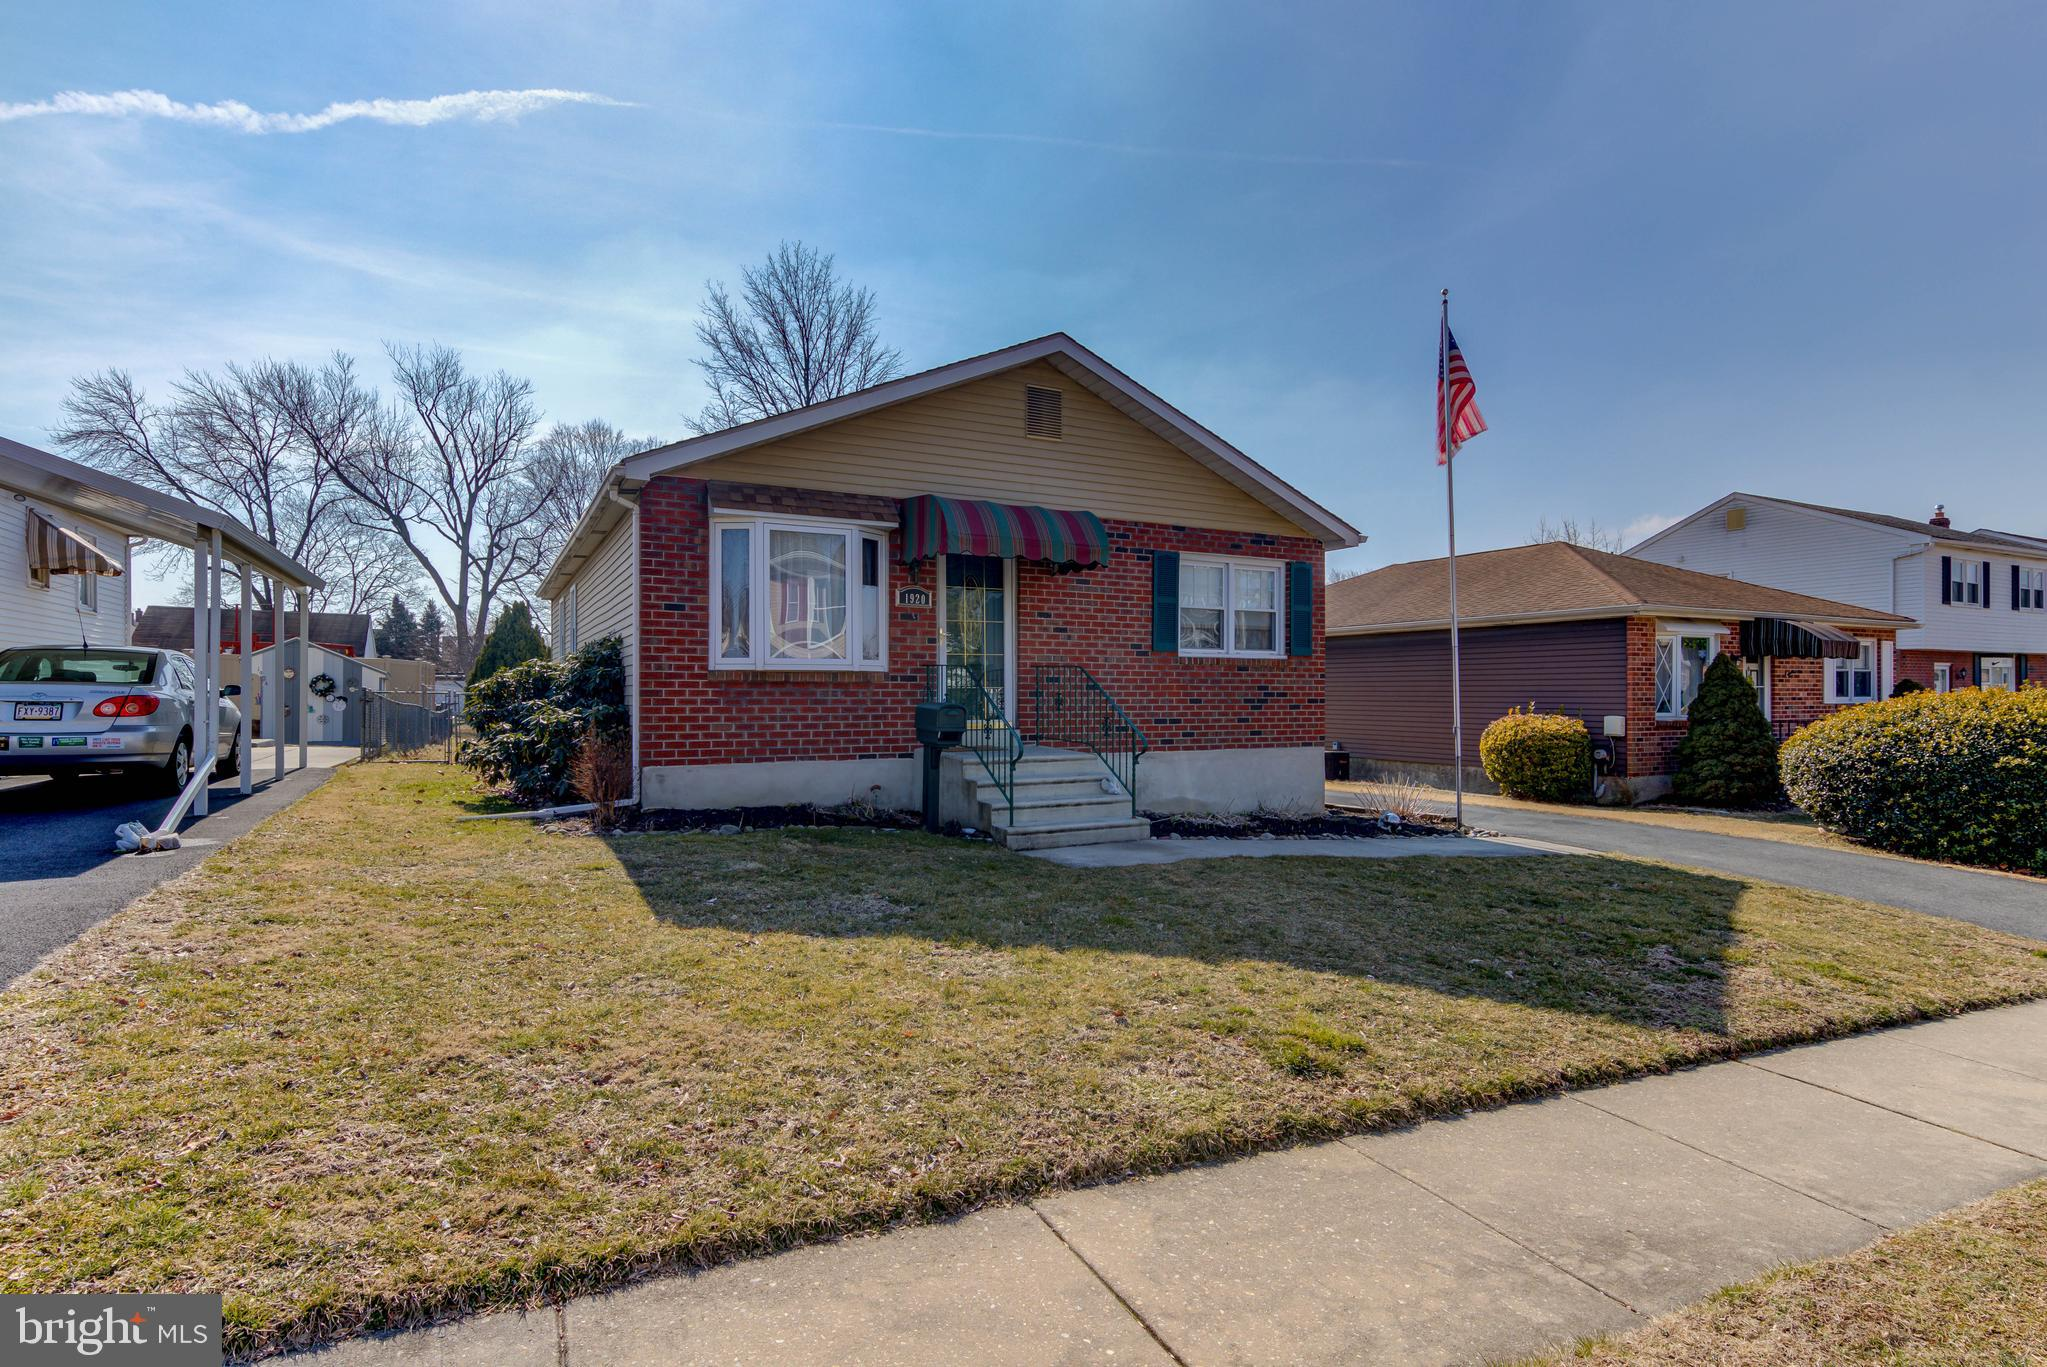 1920 ELDER AVENUE, MORTON, PA 19070